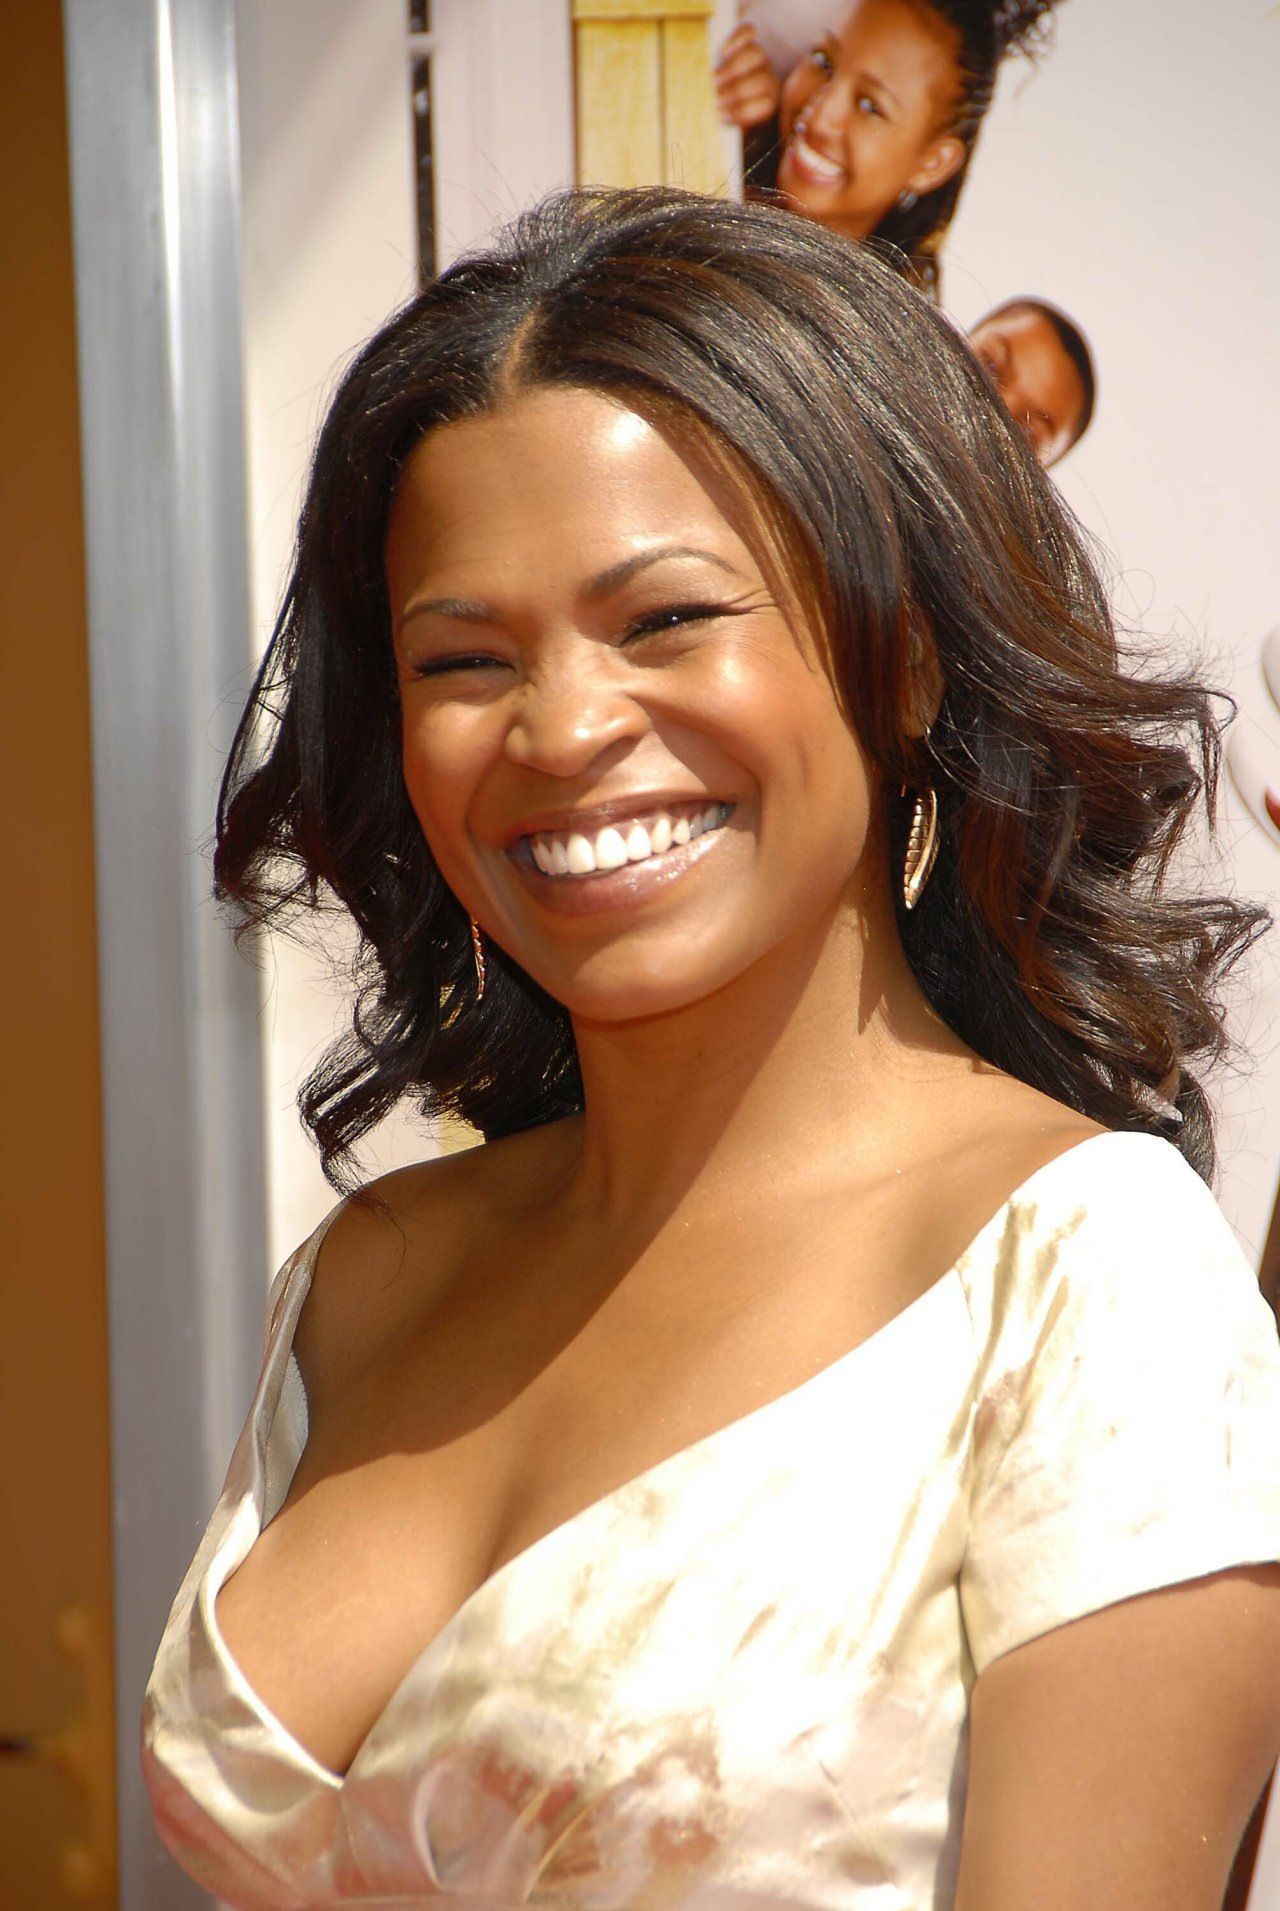 nia long porn video